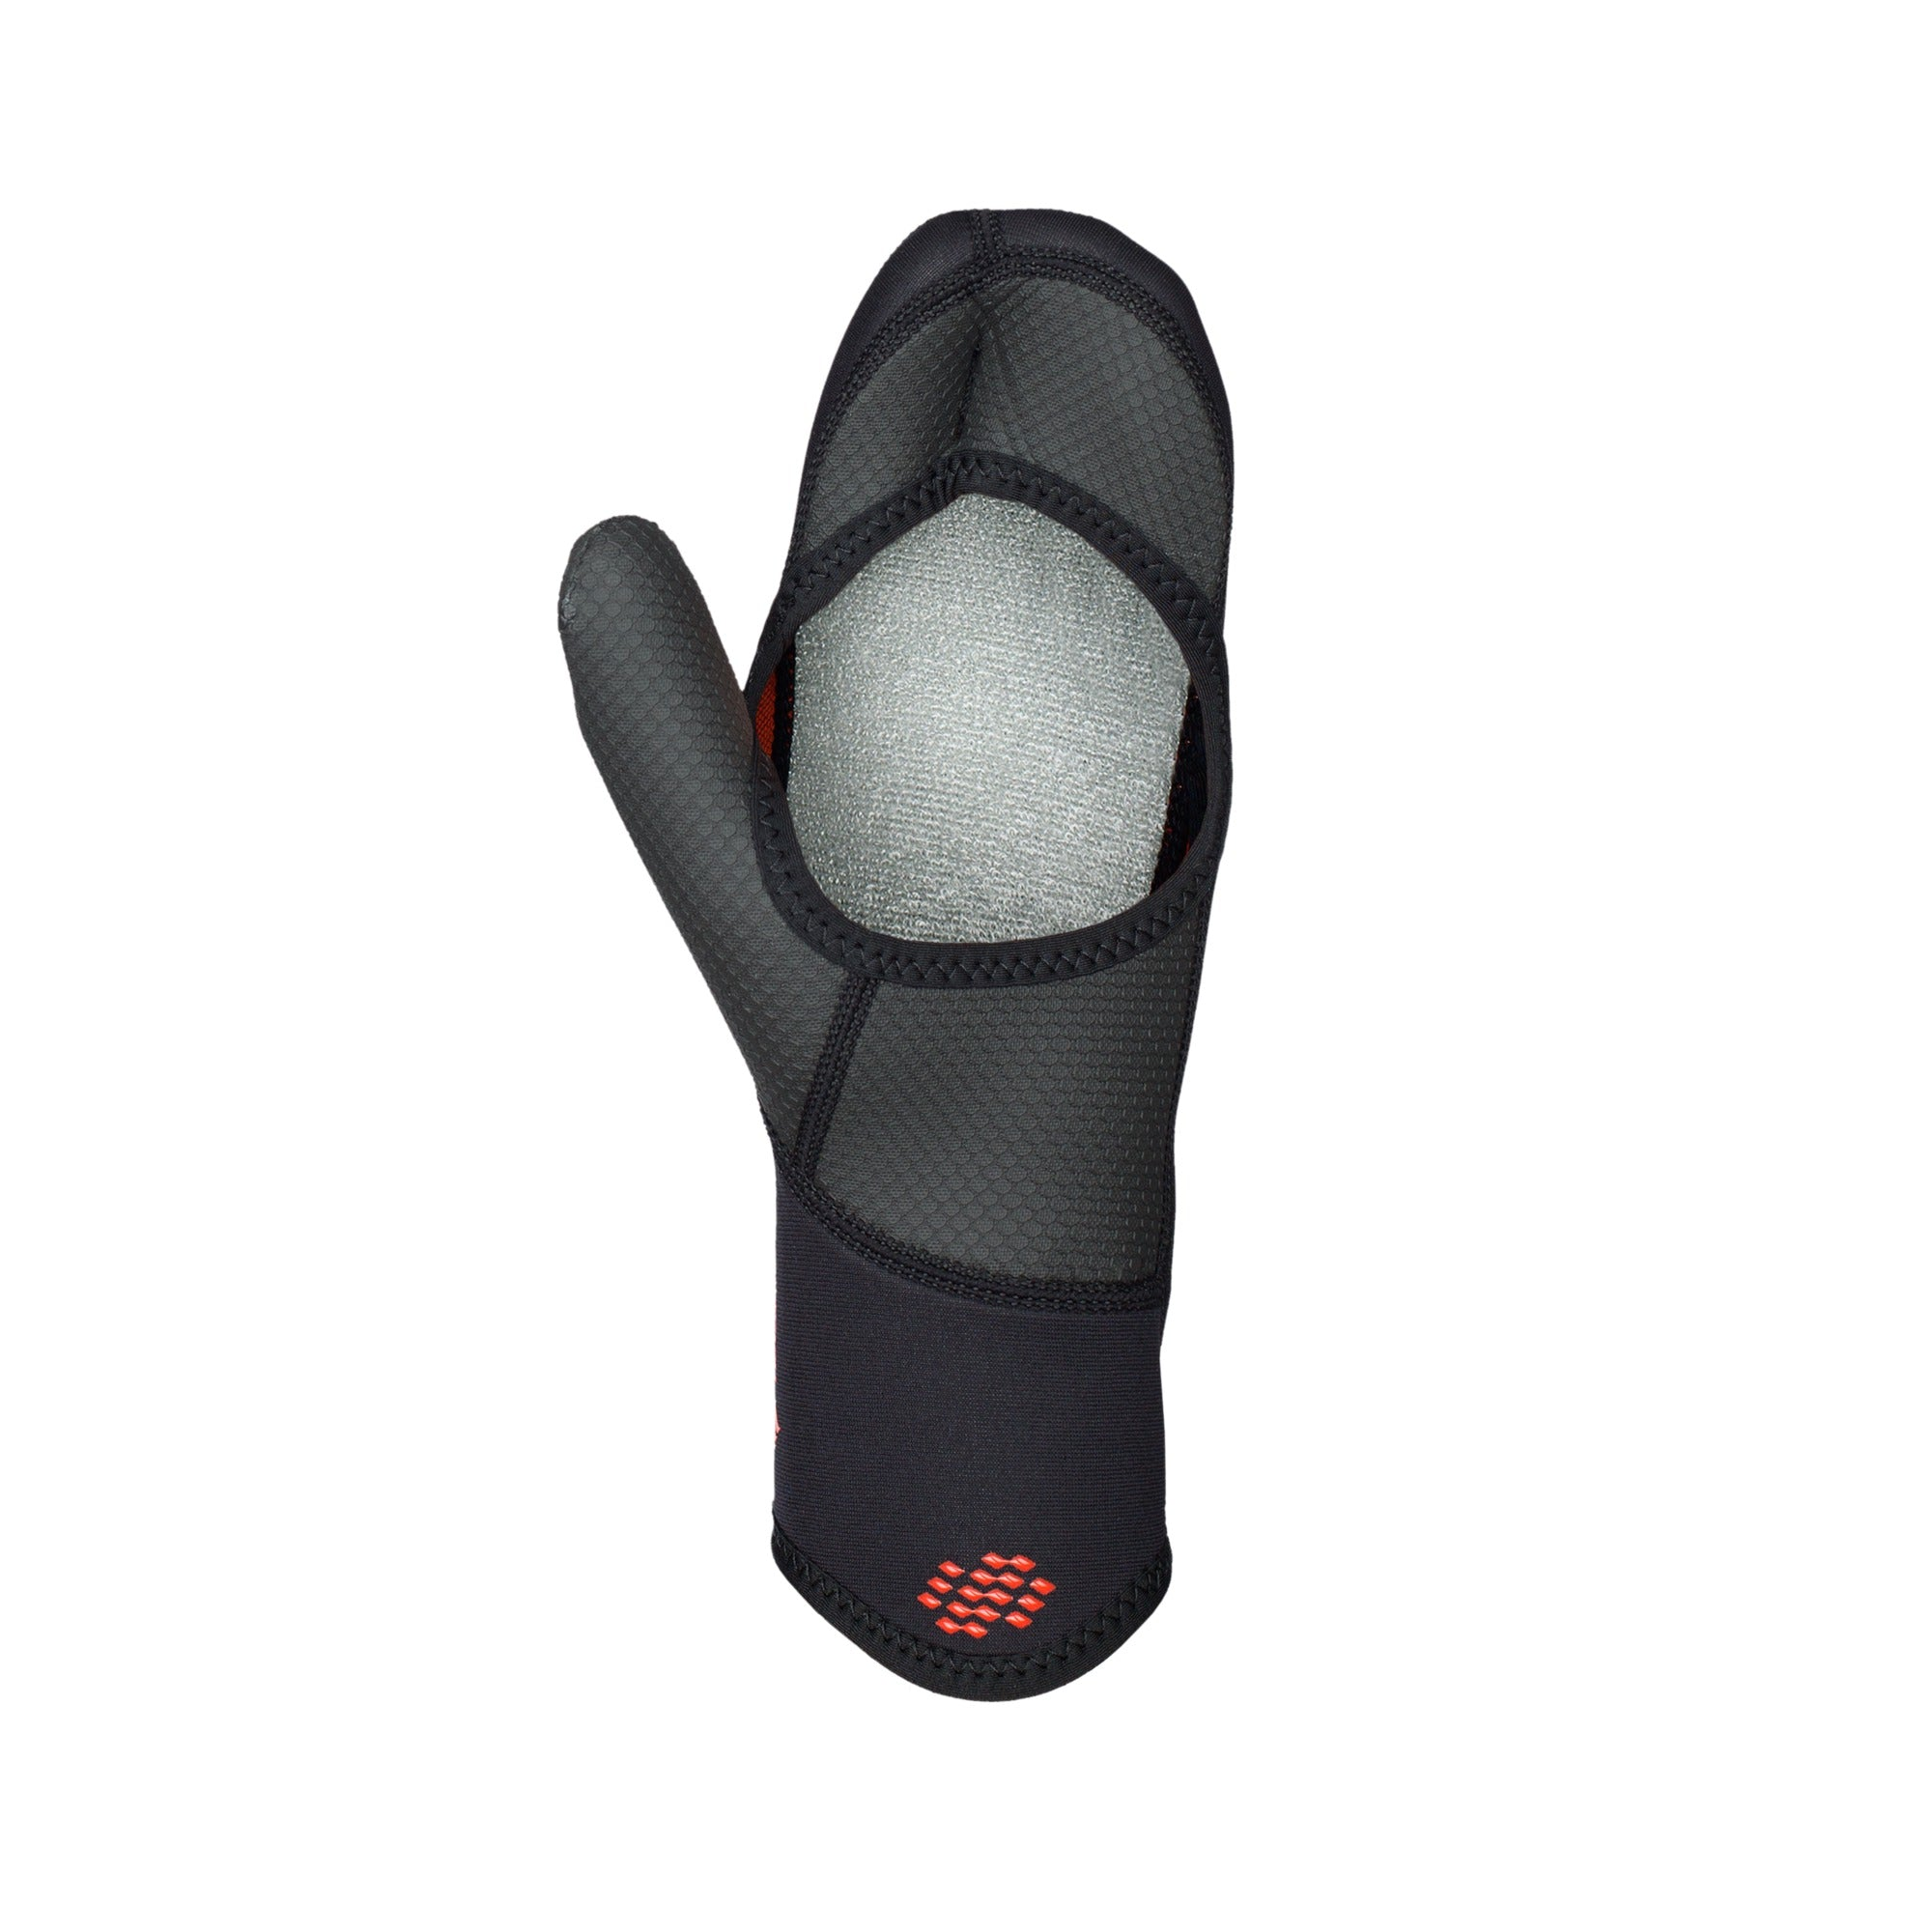 OPEN PALM MITTENS 2,5 BLACK